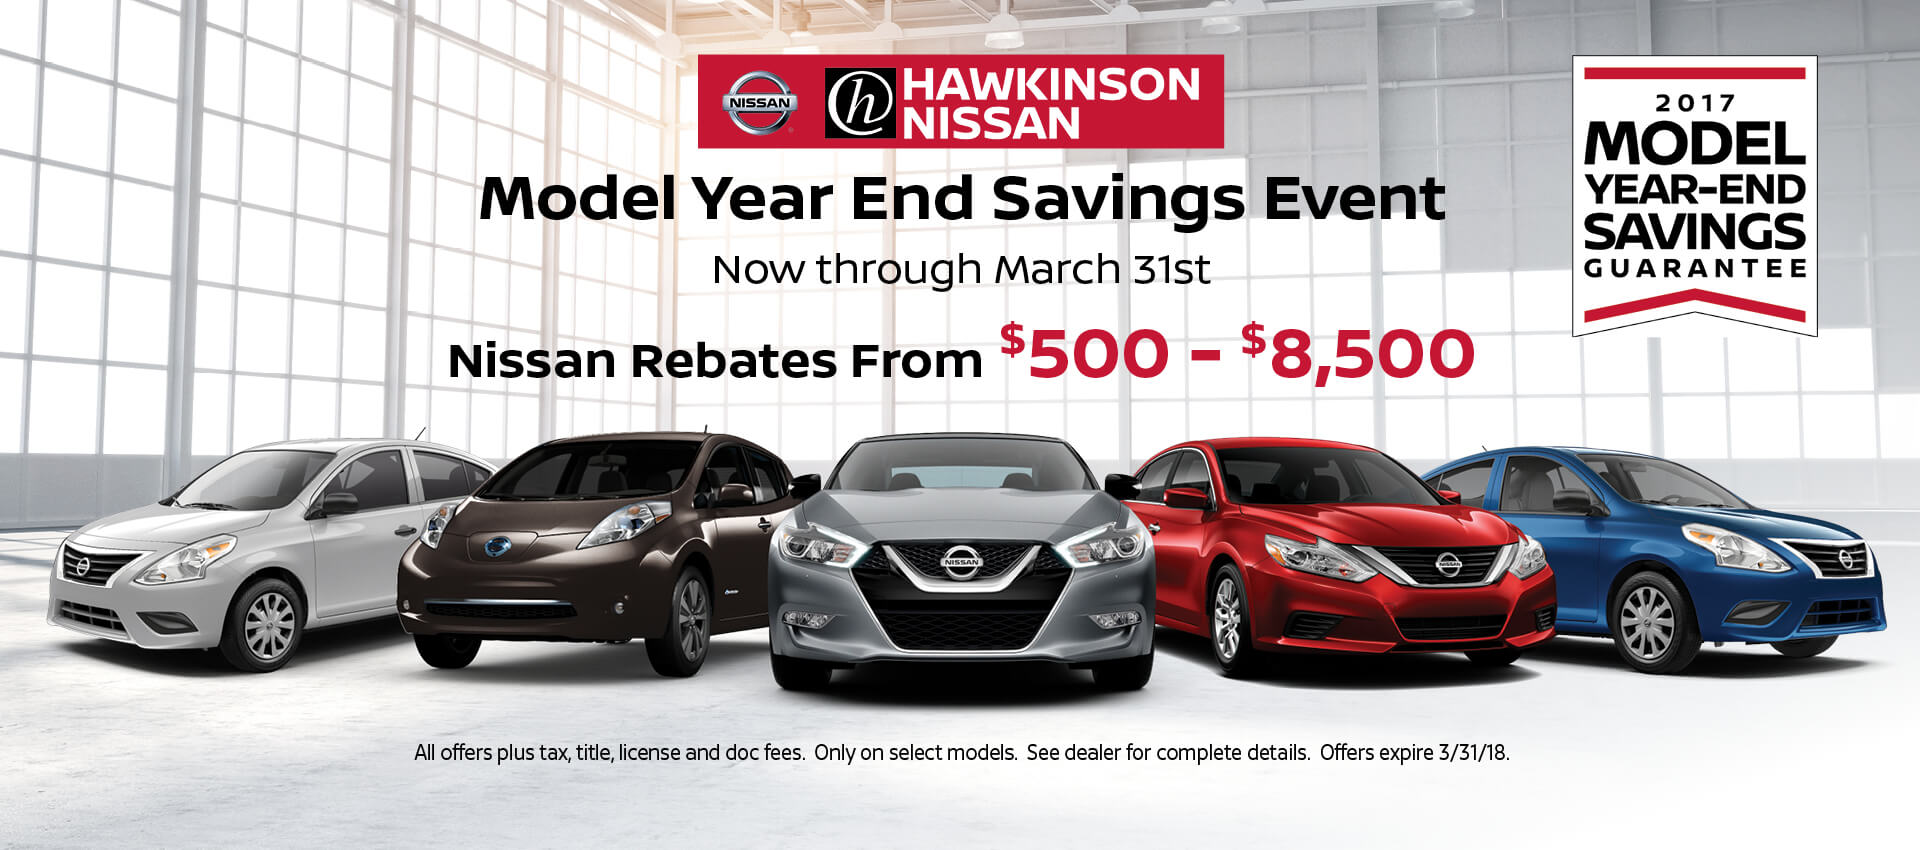 Model Year End Savings